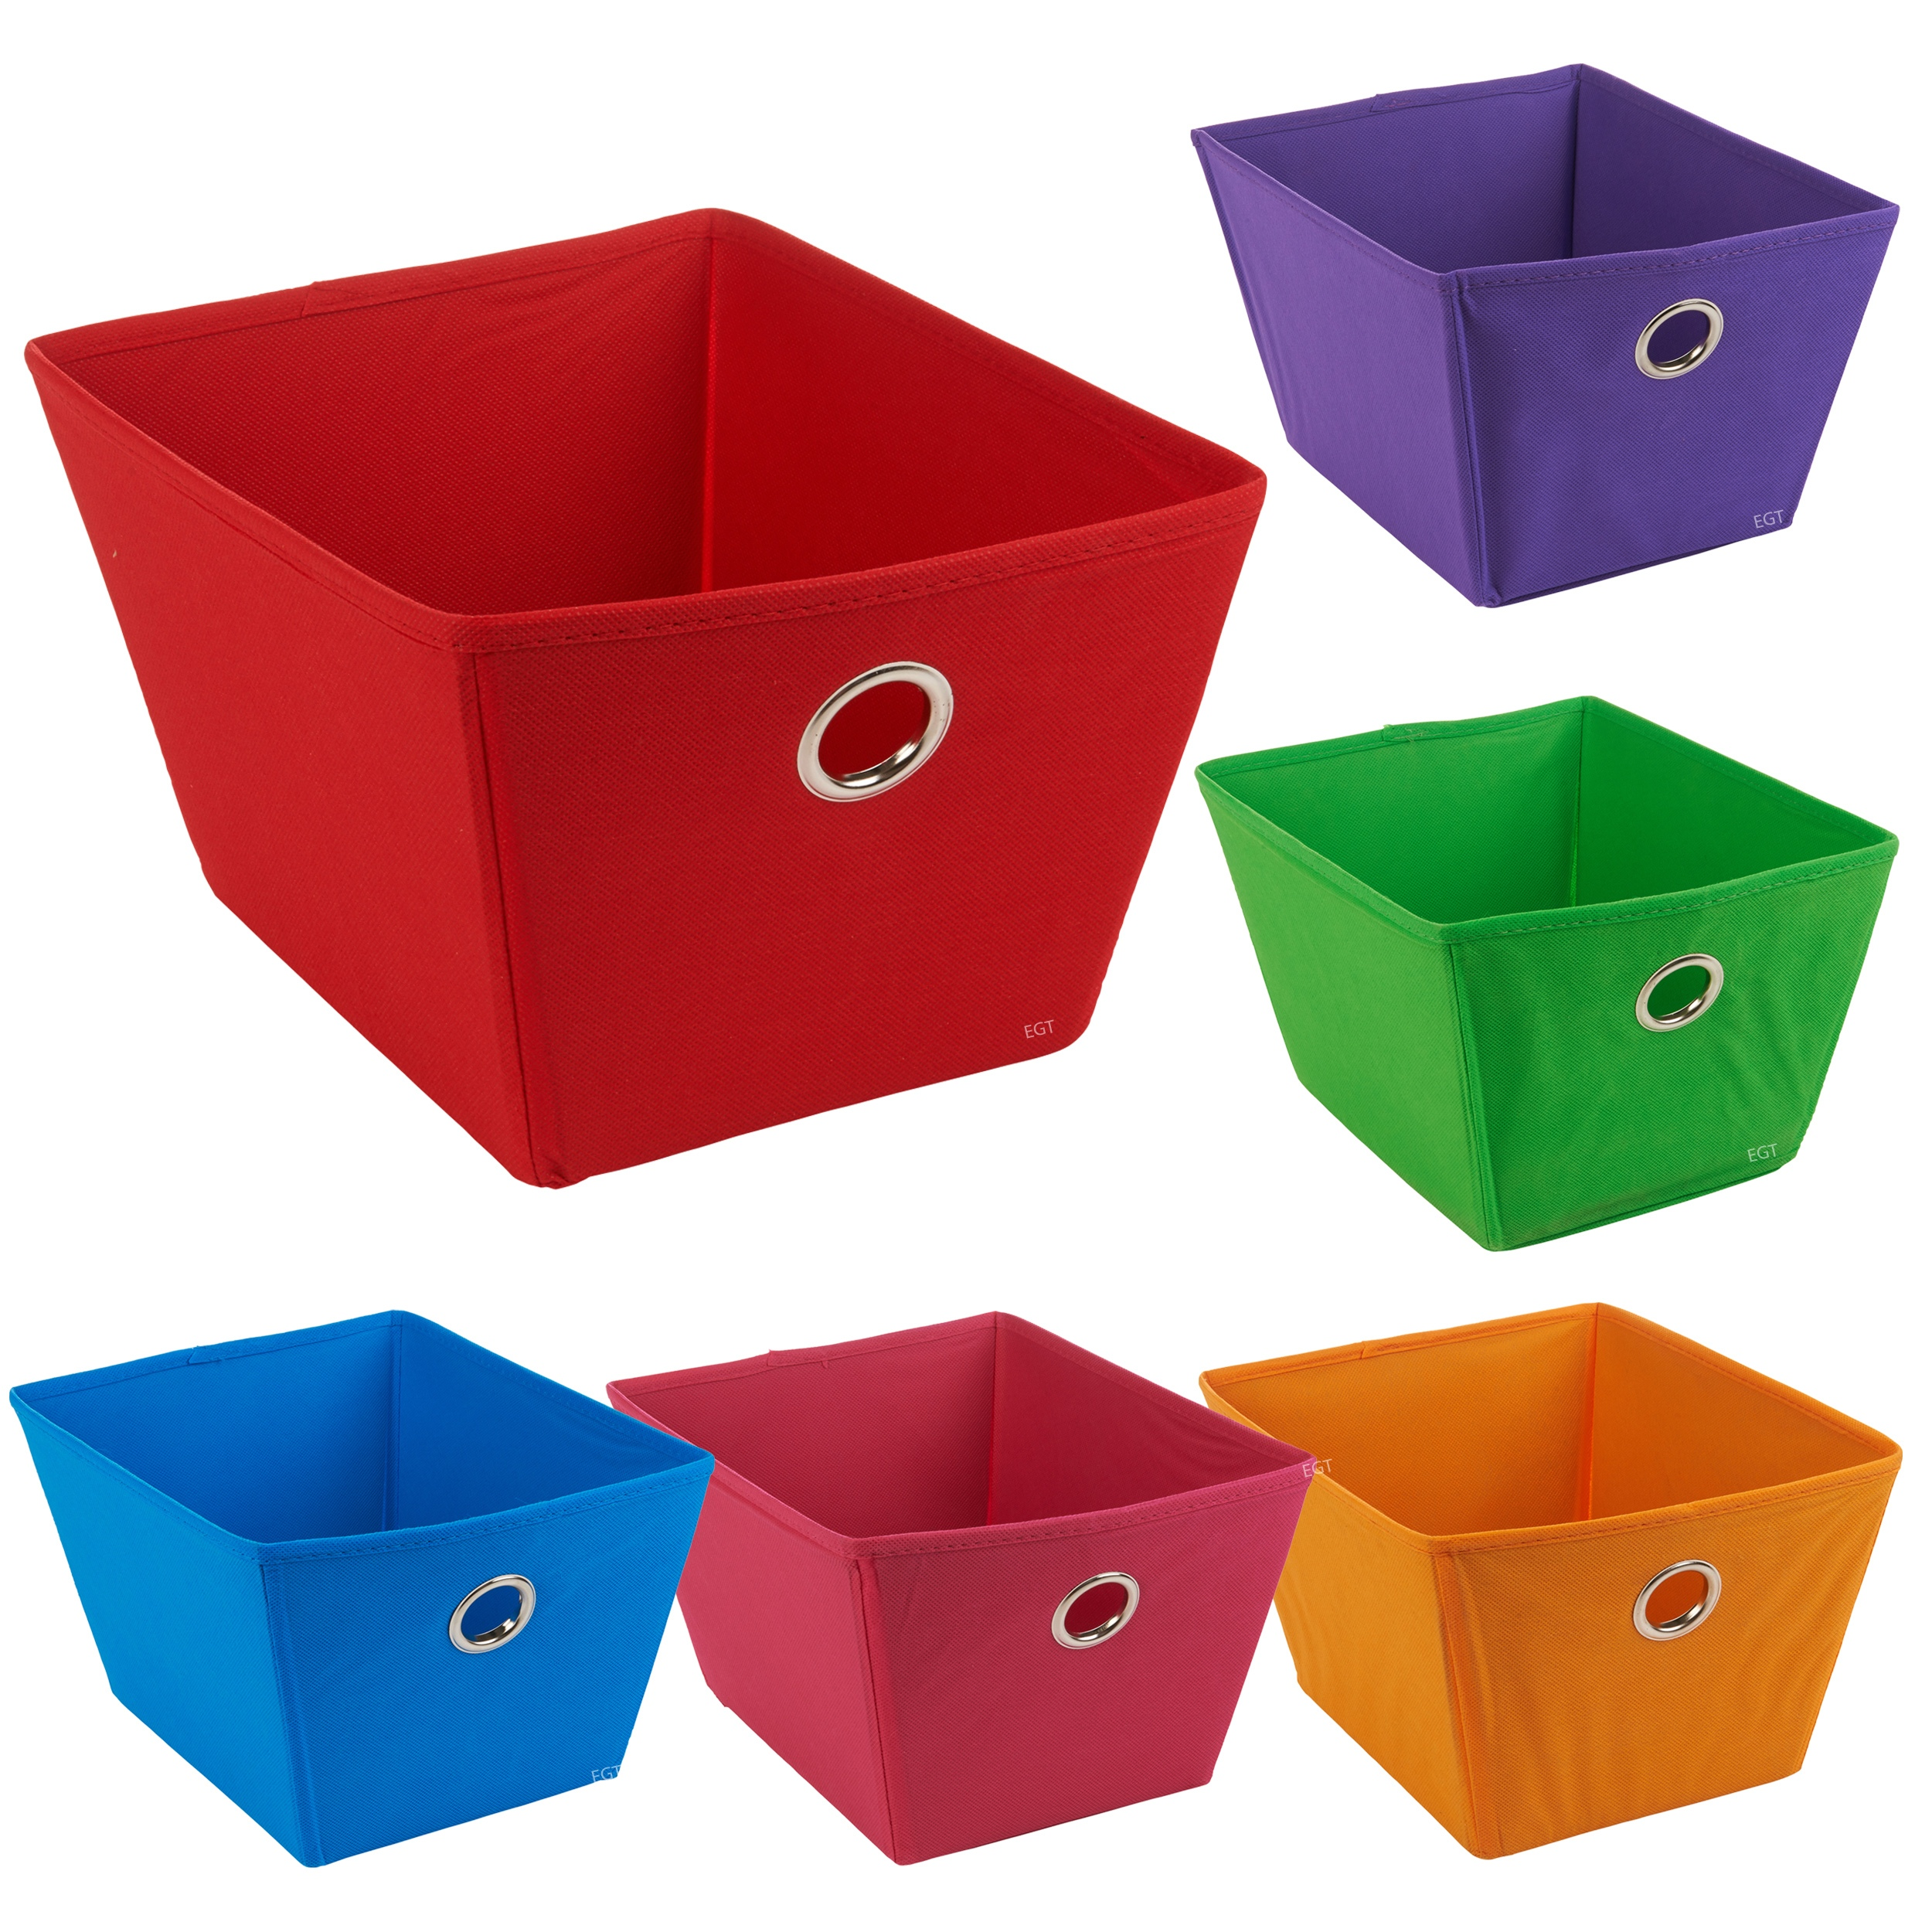 Non Woven Fabric Storage Boxes Containers Bits Bobs Box  sc 1 st  Listitdallas & Fabric Storage Box - Listitdallas